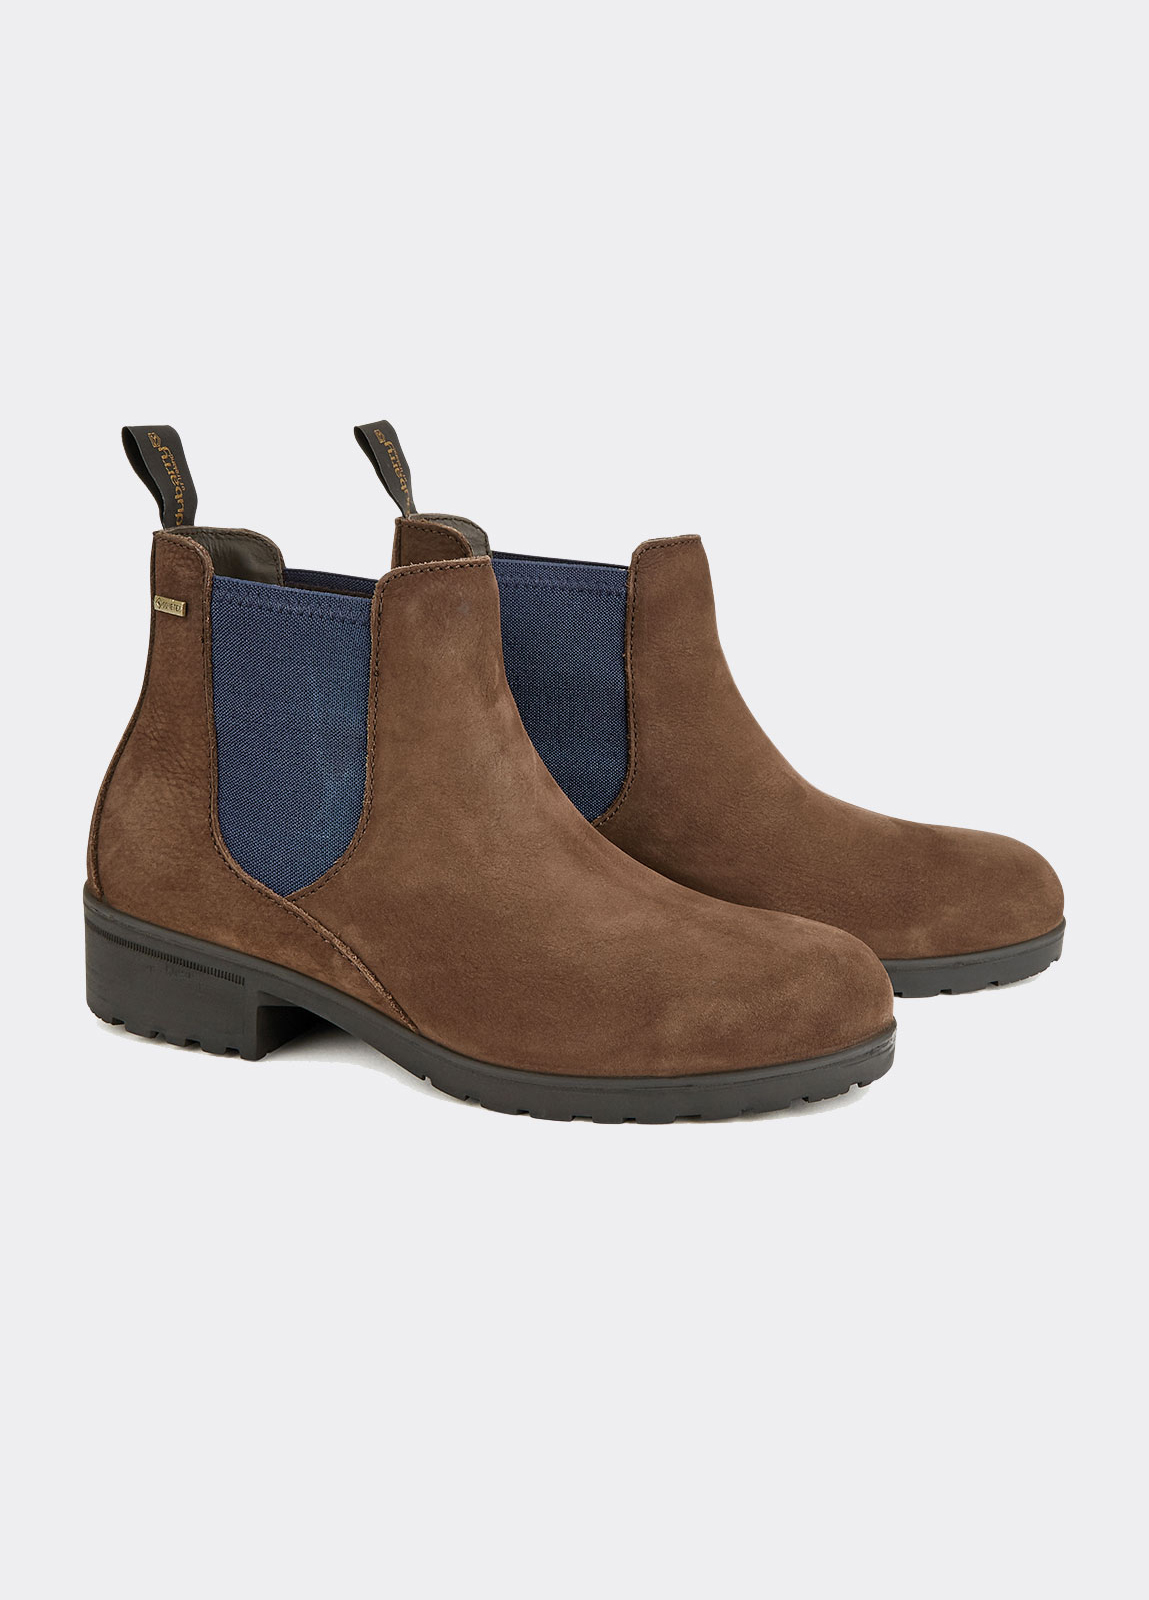 Waterford Country Boot - Java